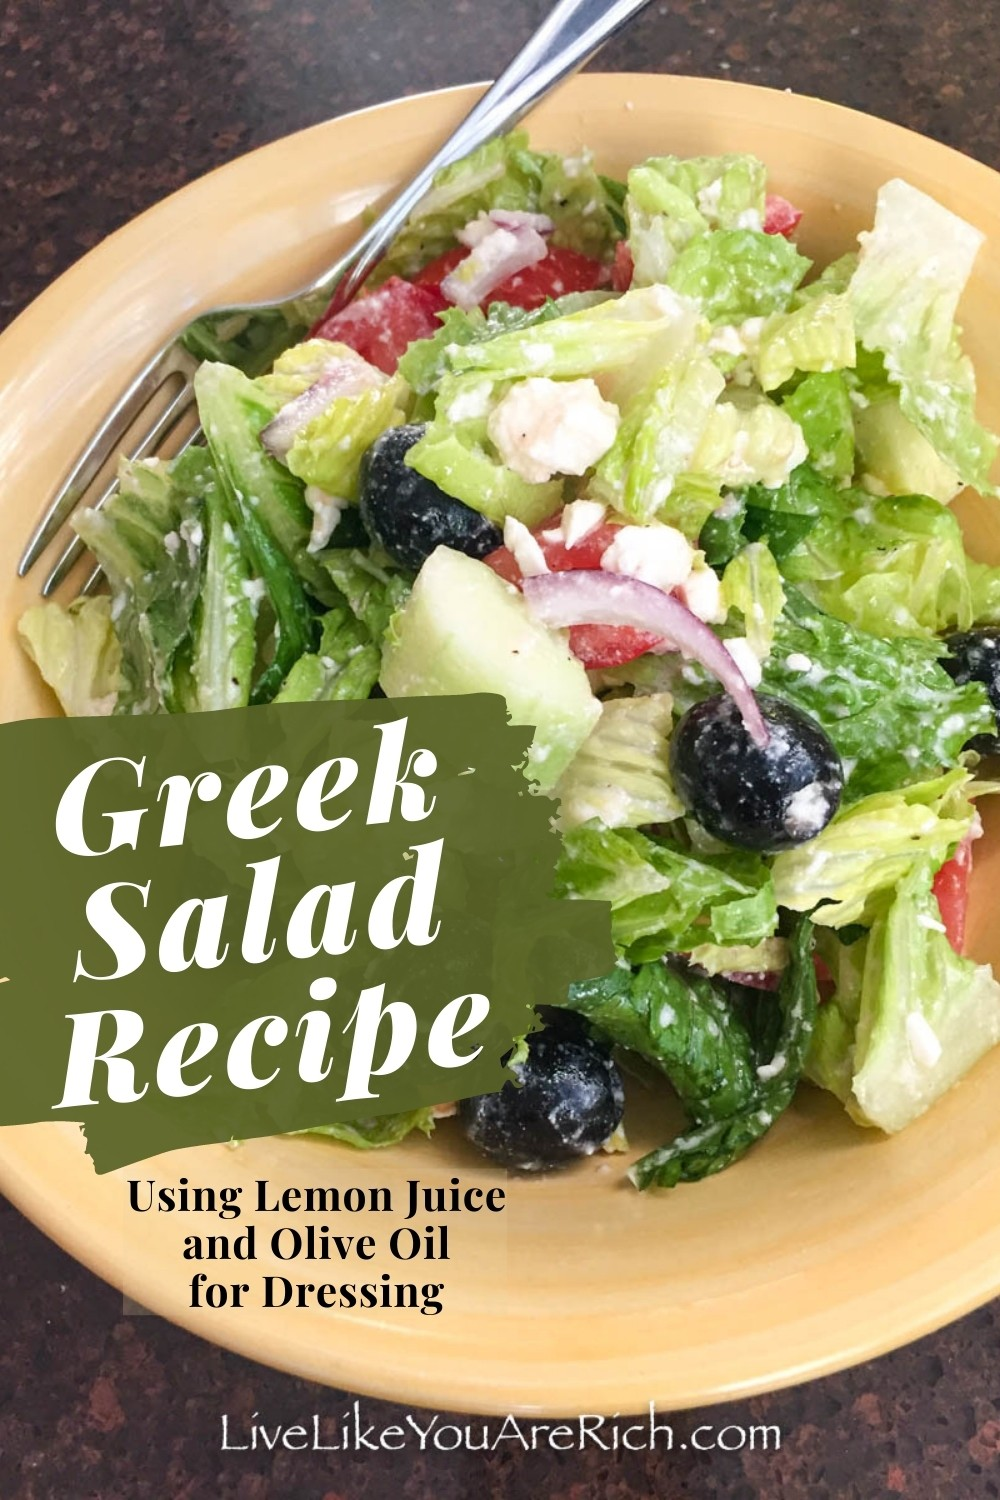 This Greek Salad Recipe using just lemon juice and olive oil for dressing is amazingly refreshing and delicious. It has got a great blend of flavors, tastes super fresh and is easy to make.